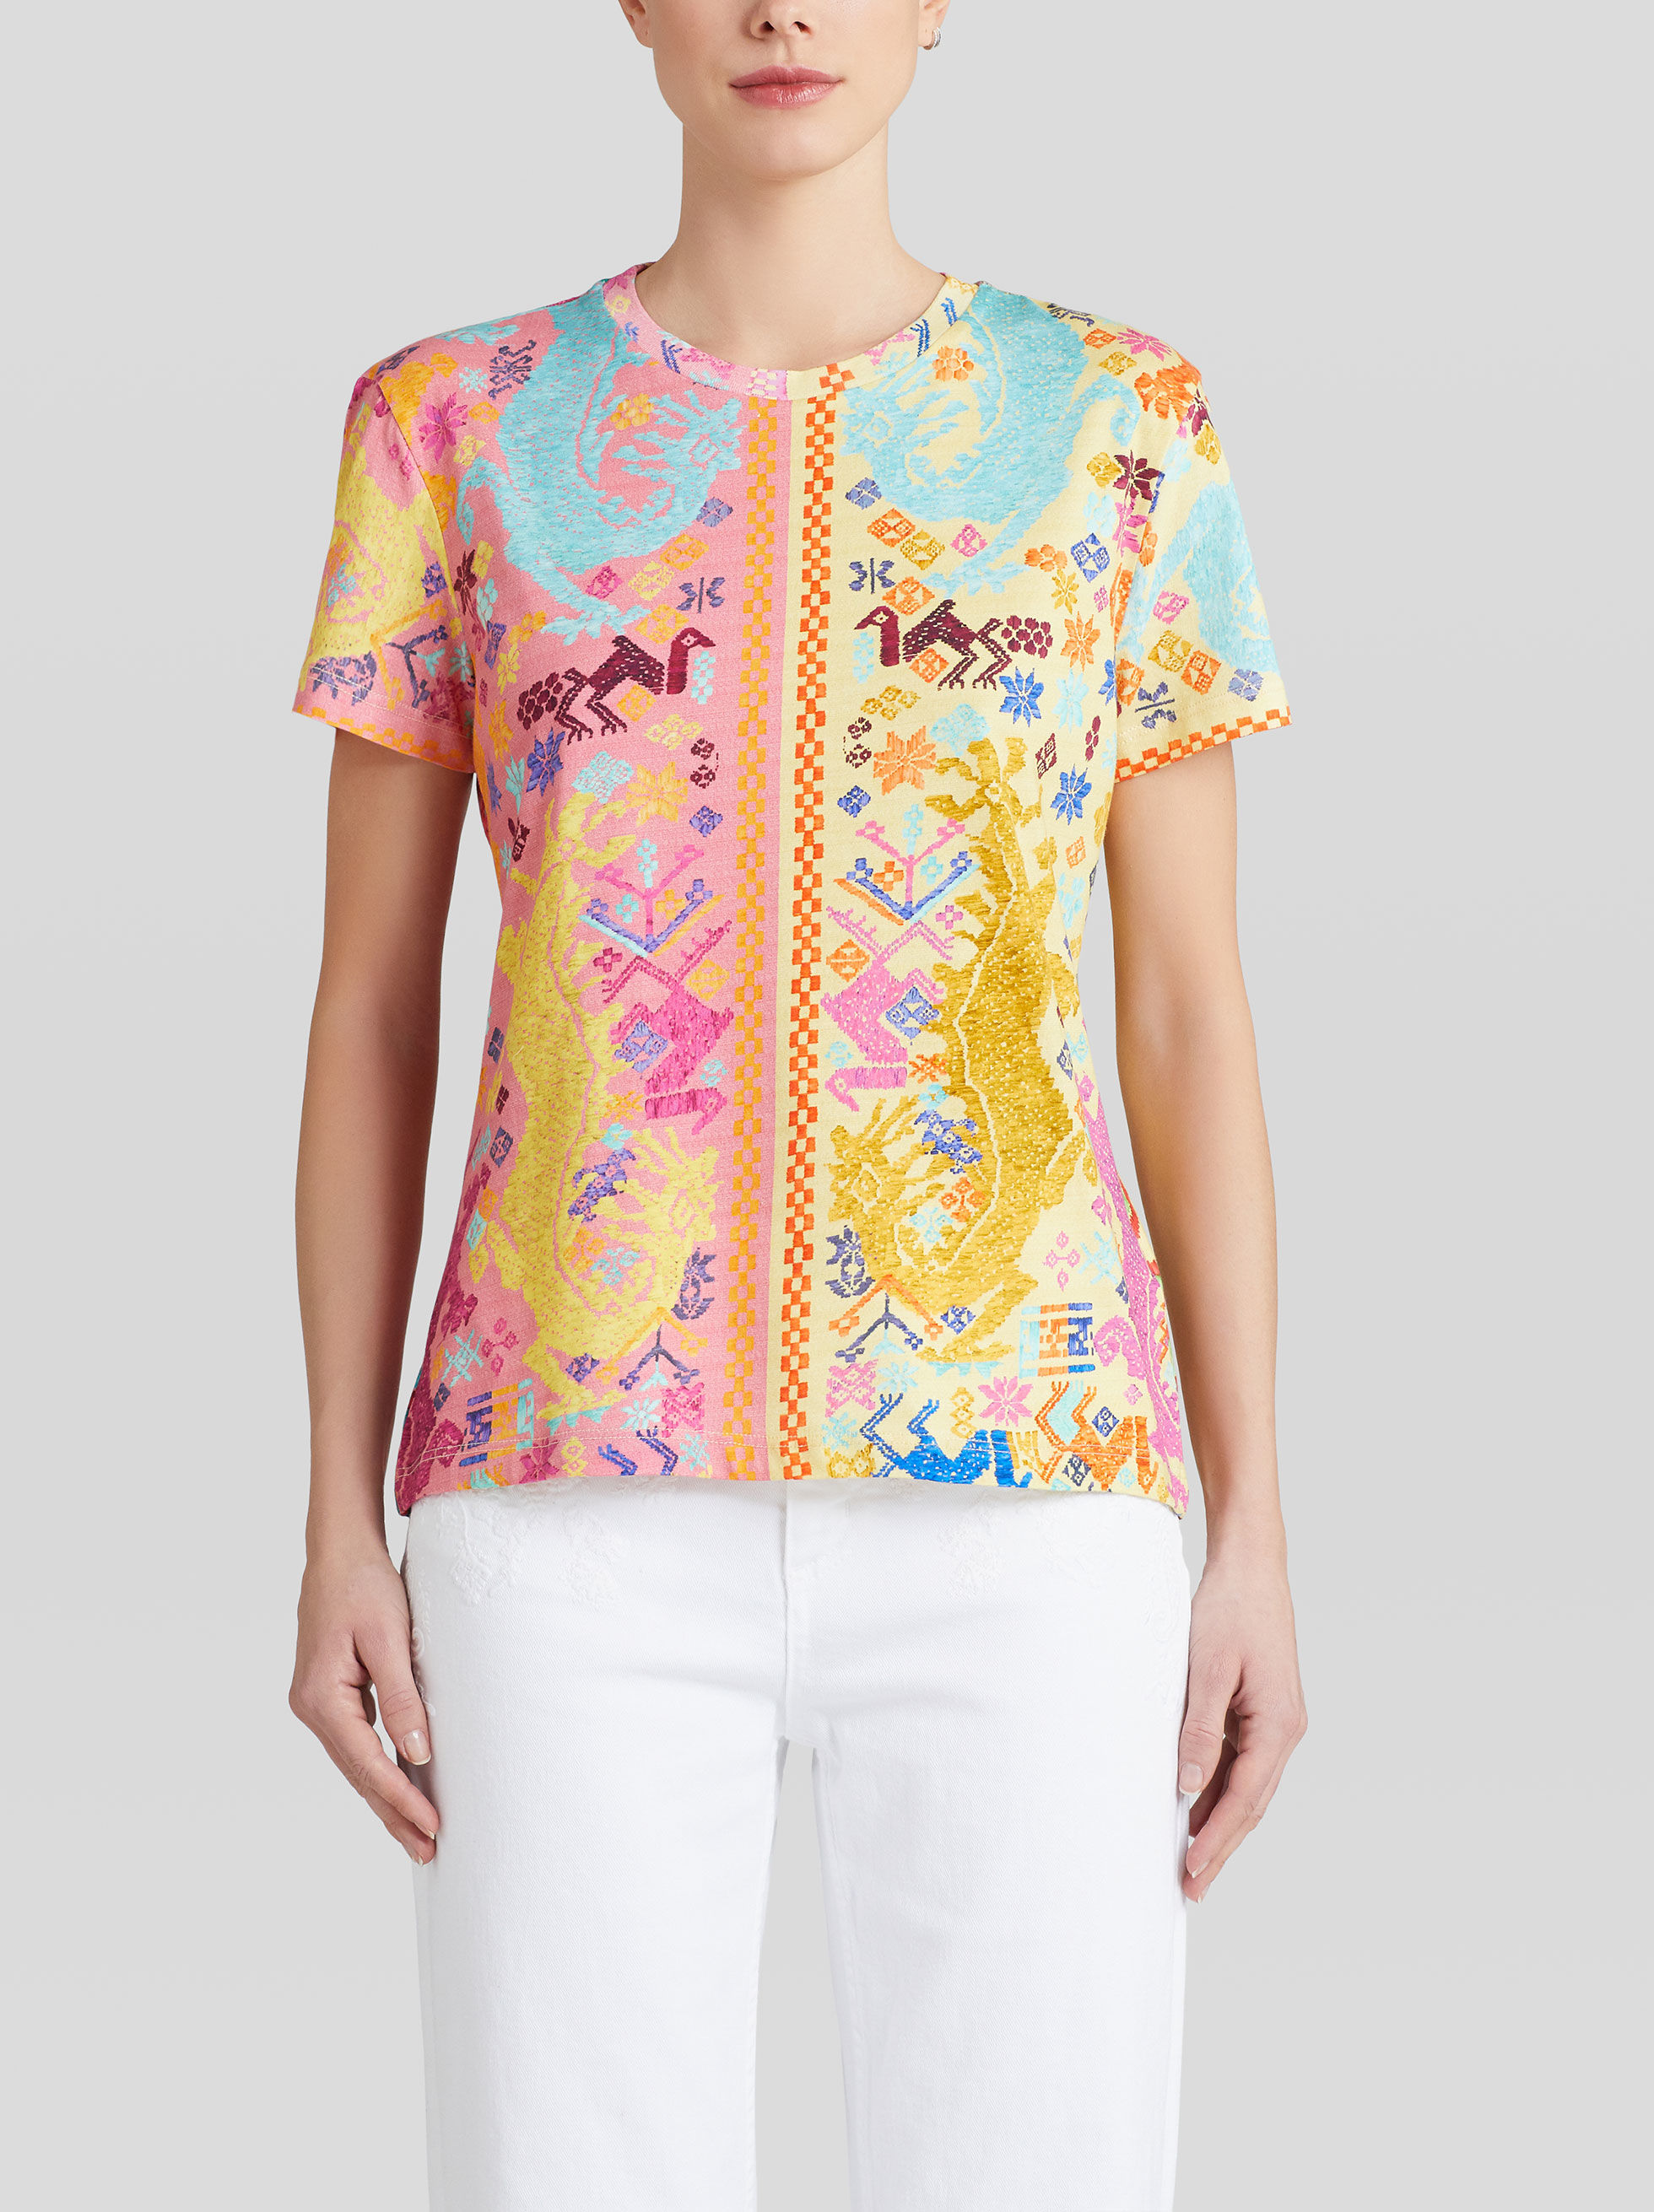 EMBROIDERY-EFFECT PRINT COTTON T-SHIRT